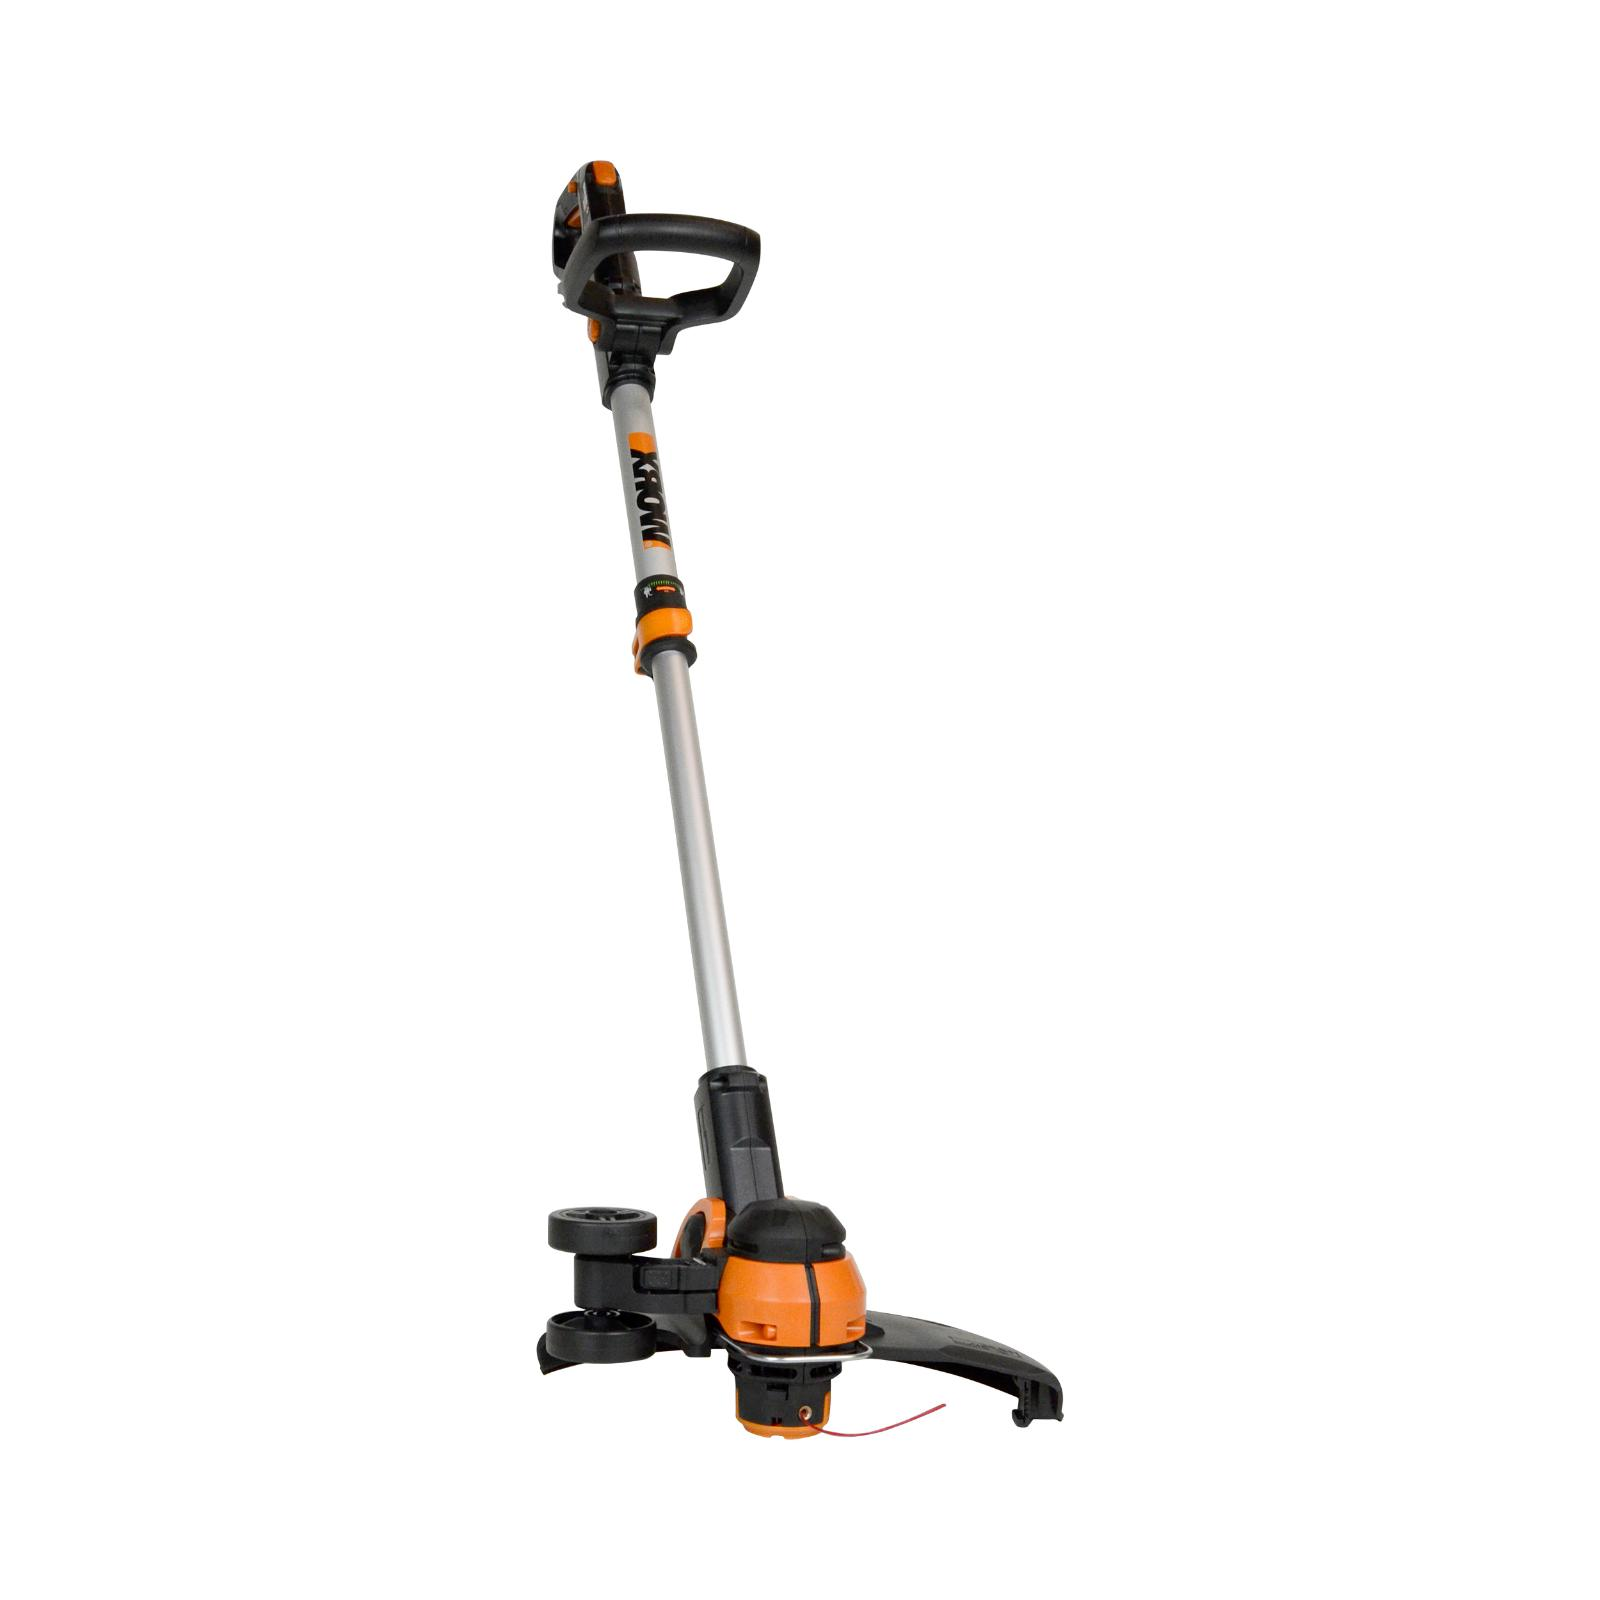 Weed Eater Q4 75 Manual